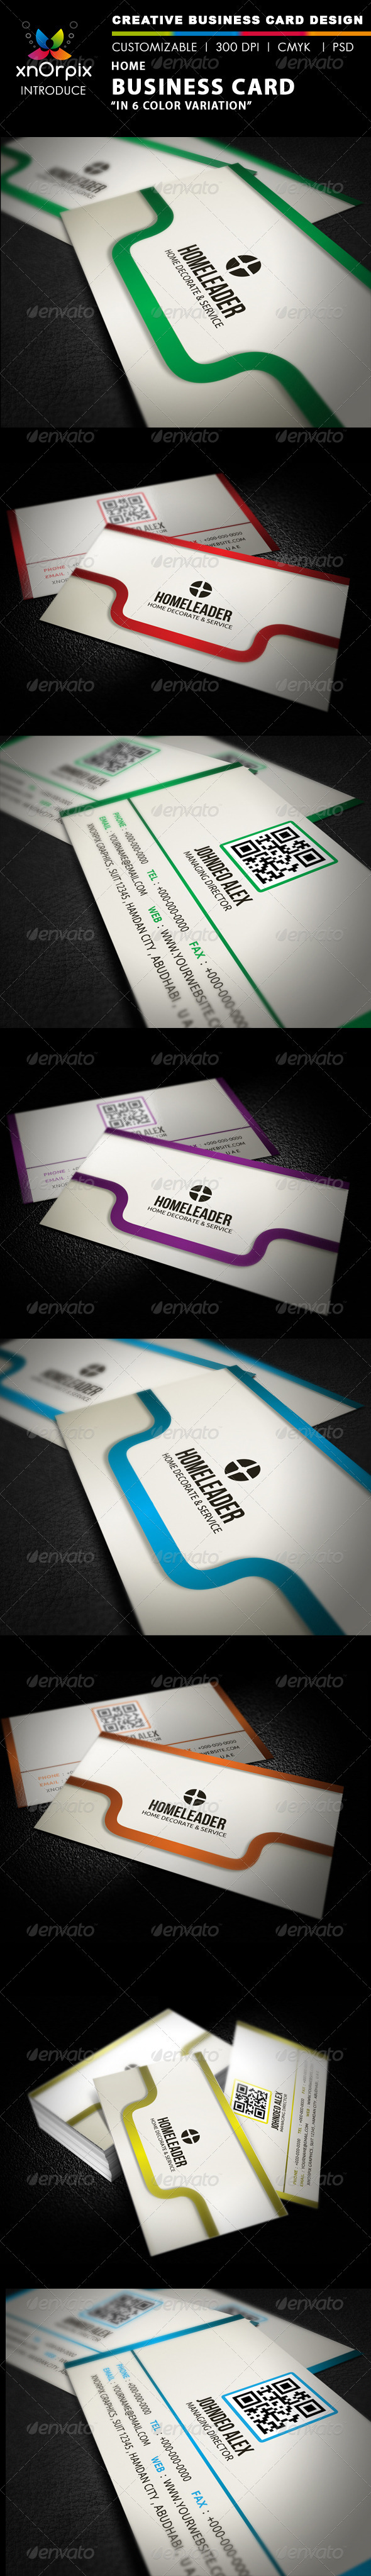 Home Business Card - Business Cards Print Templates